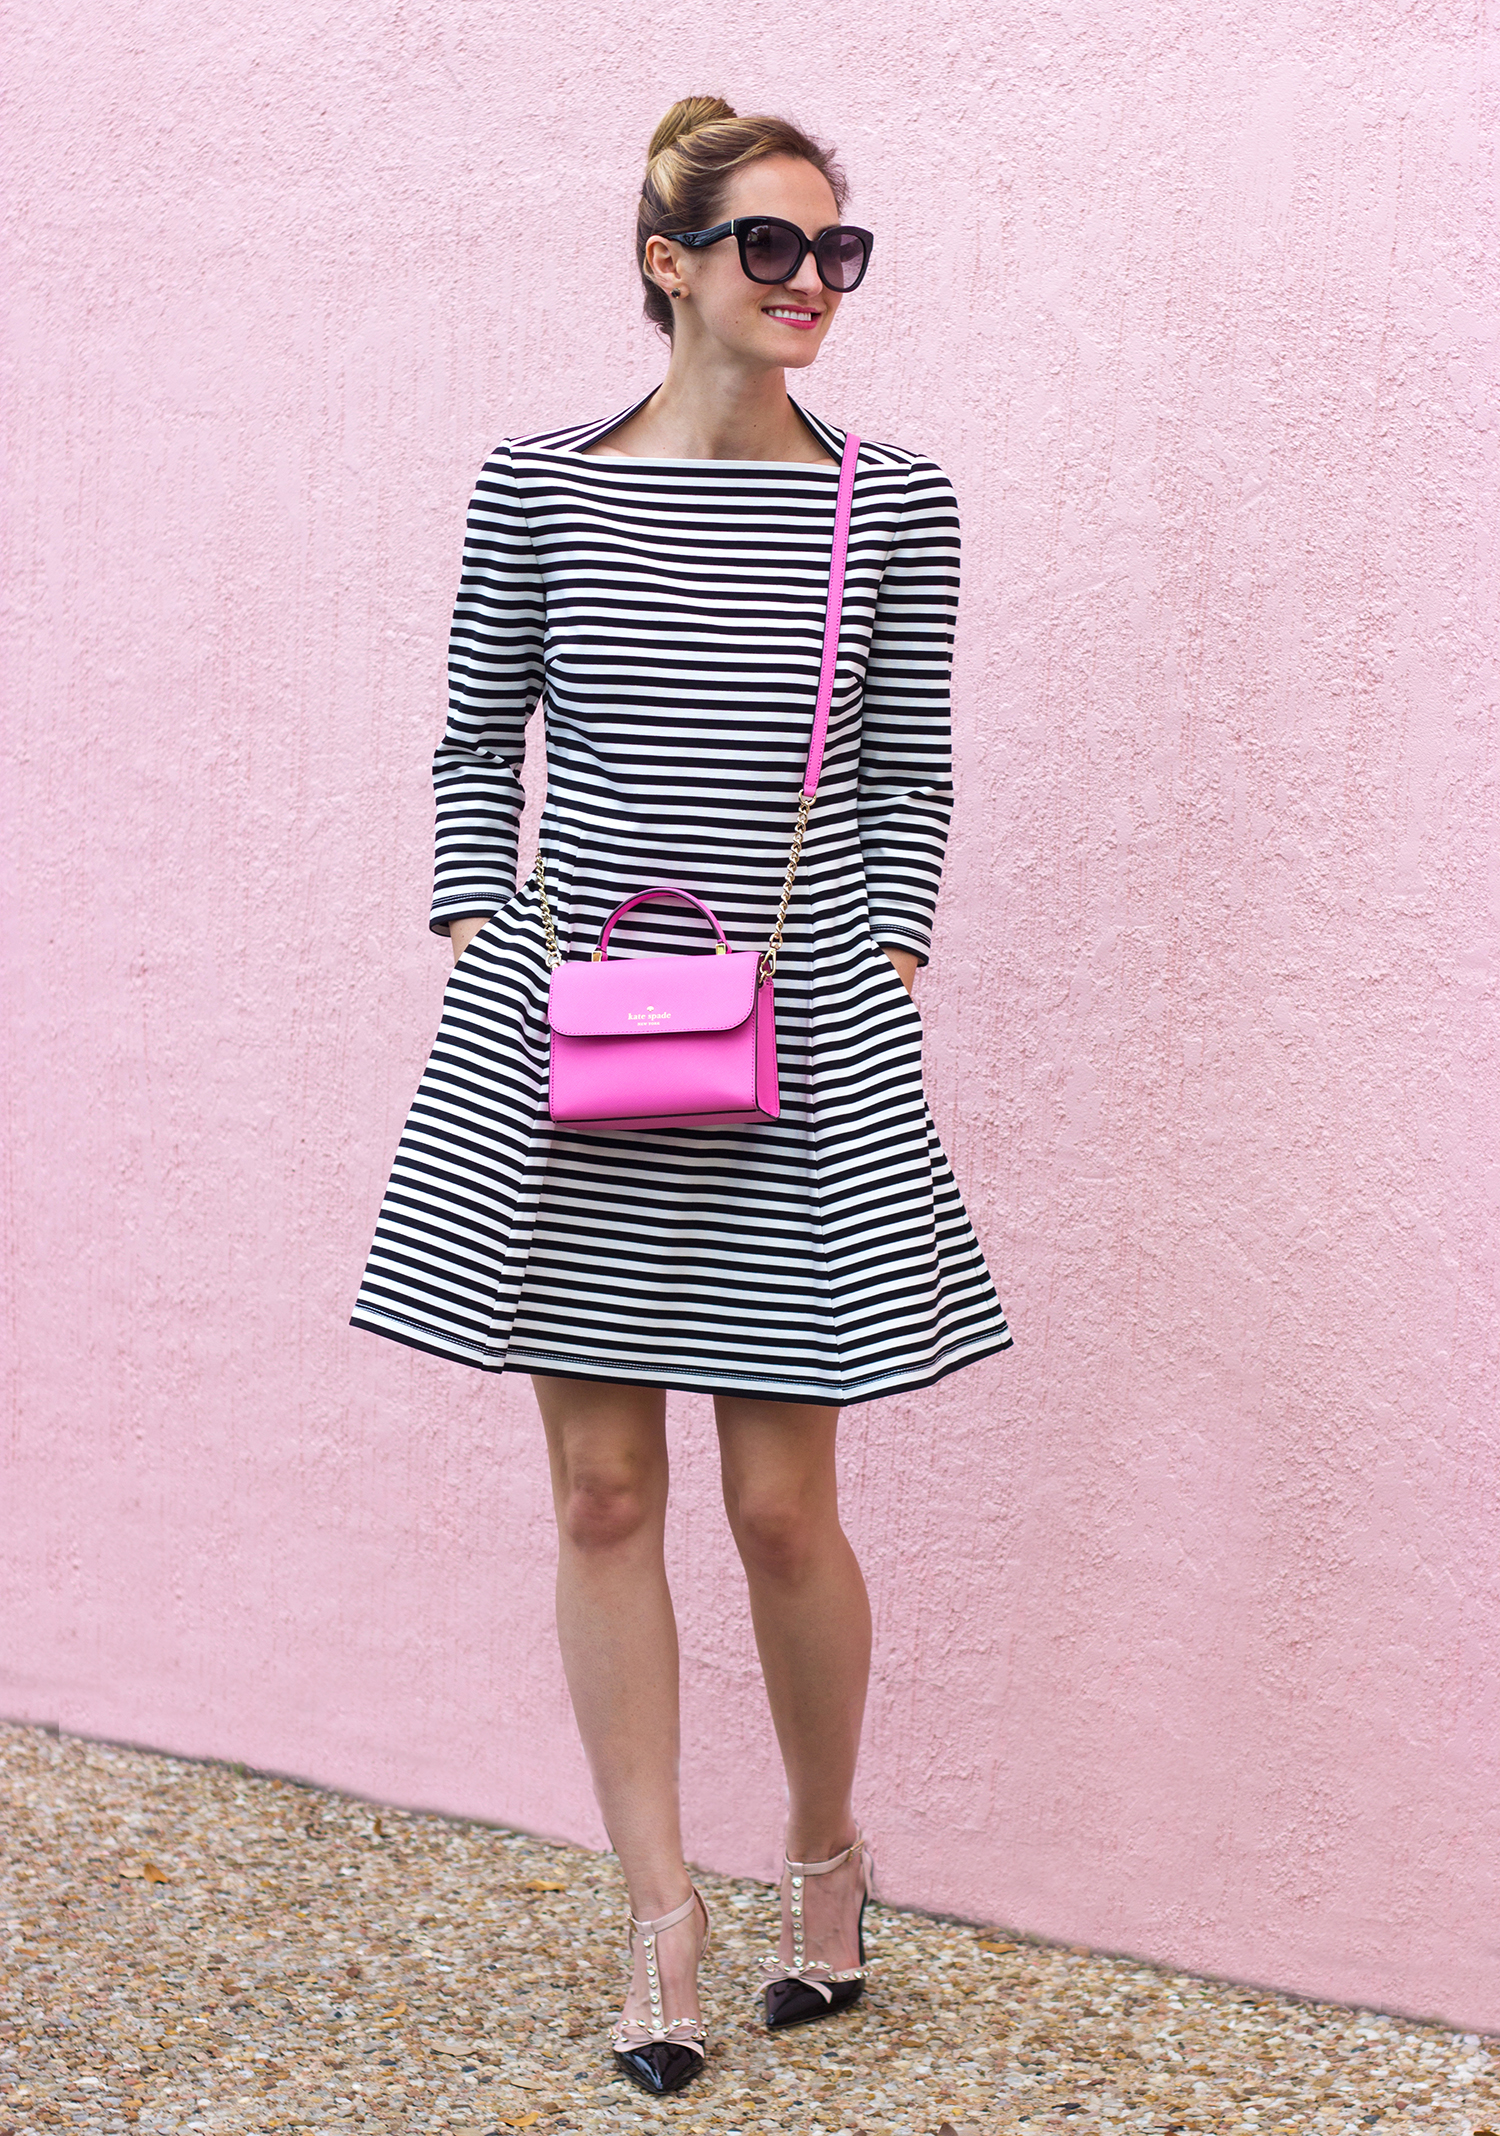 livvyland-blog-olivia-watson-austin-texas-fashion-blogger-kate-spade-broome-street-everyday-tee-white-rose-pleated-skirt-pink-black-spring-outfit-striped-everyday-dress-rouge-pink-handbag-3